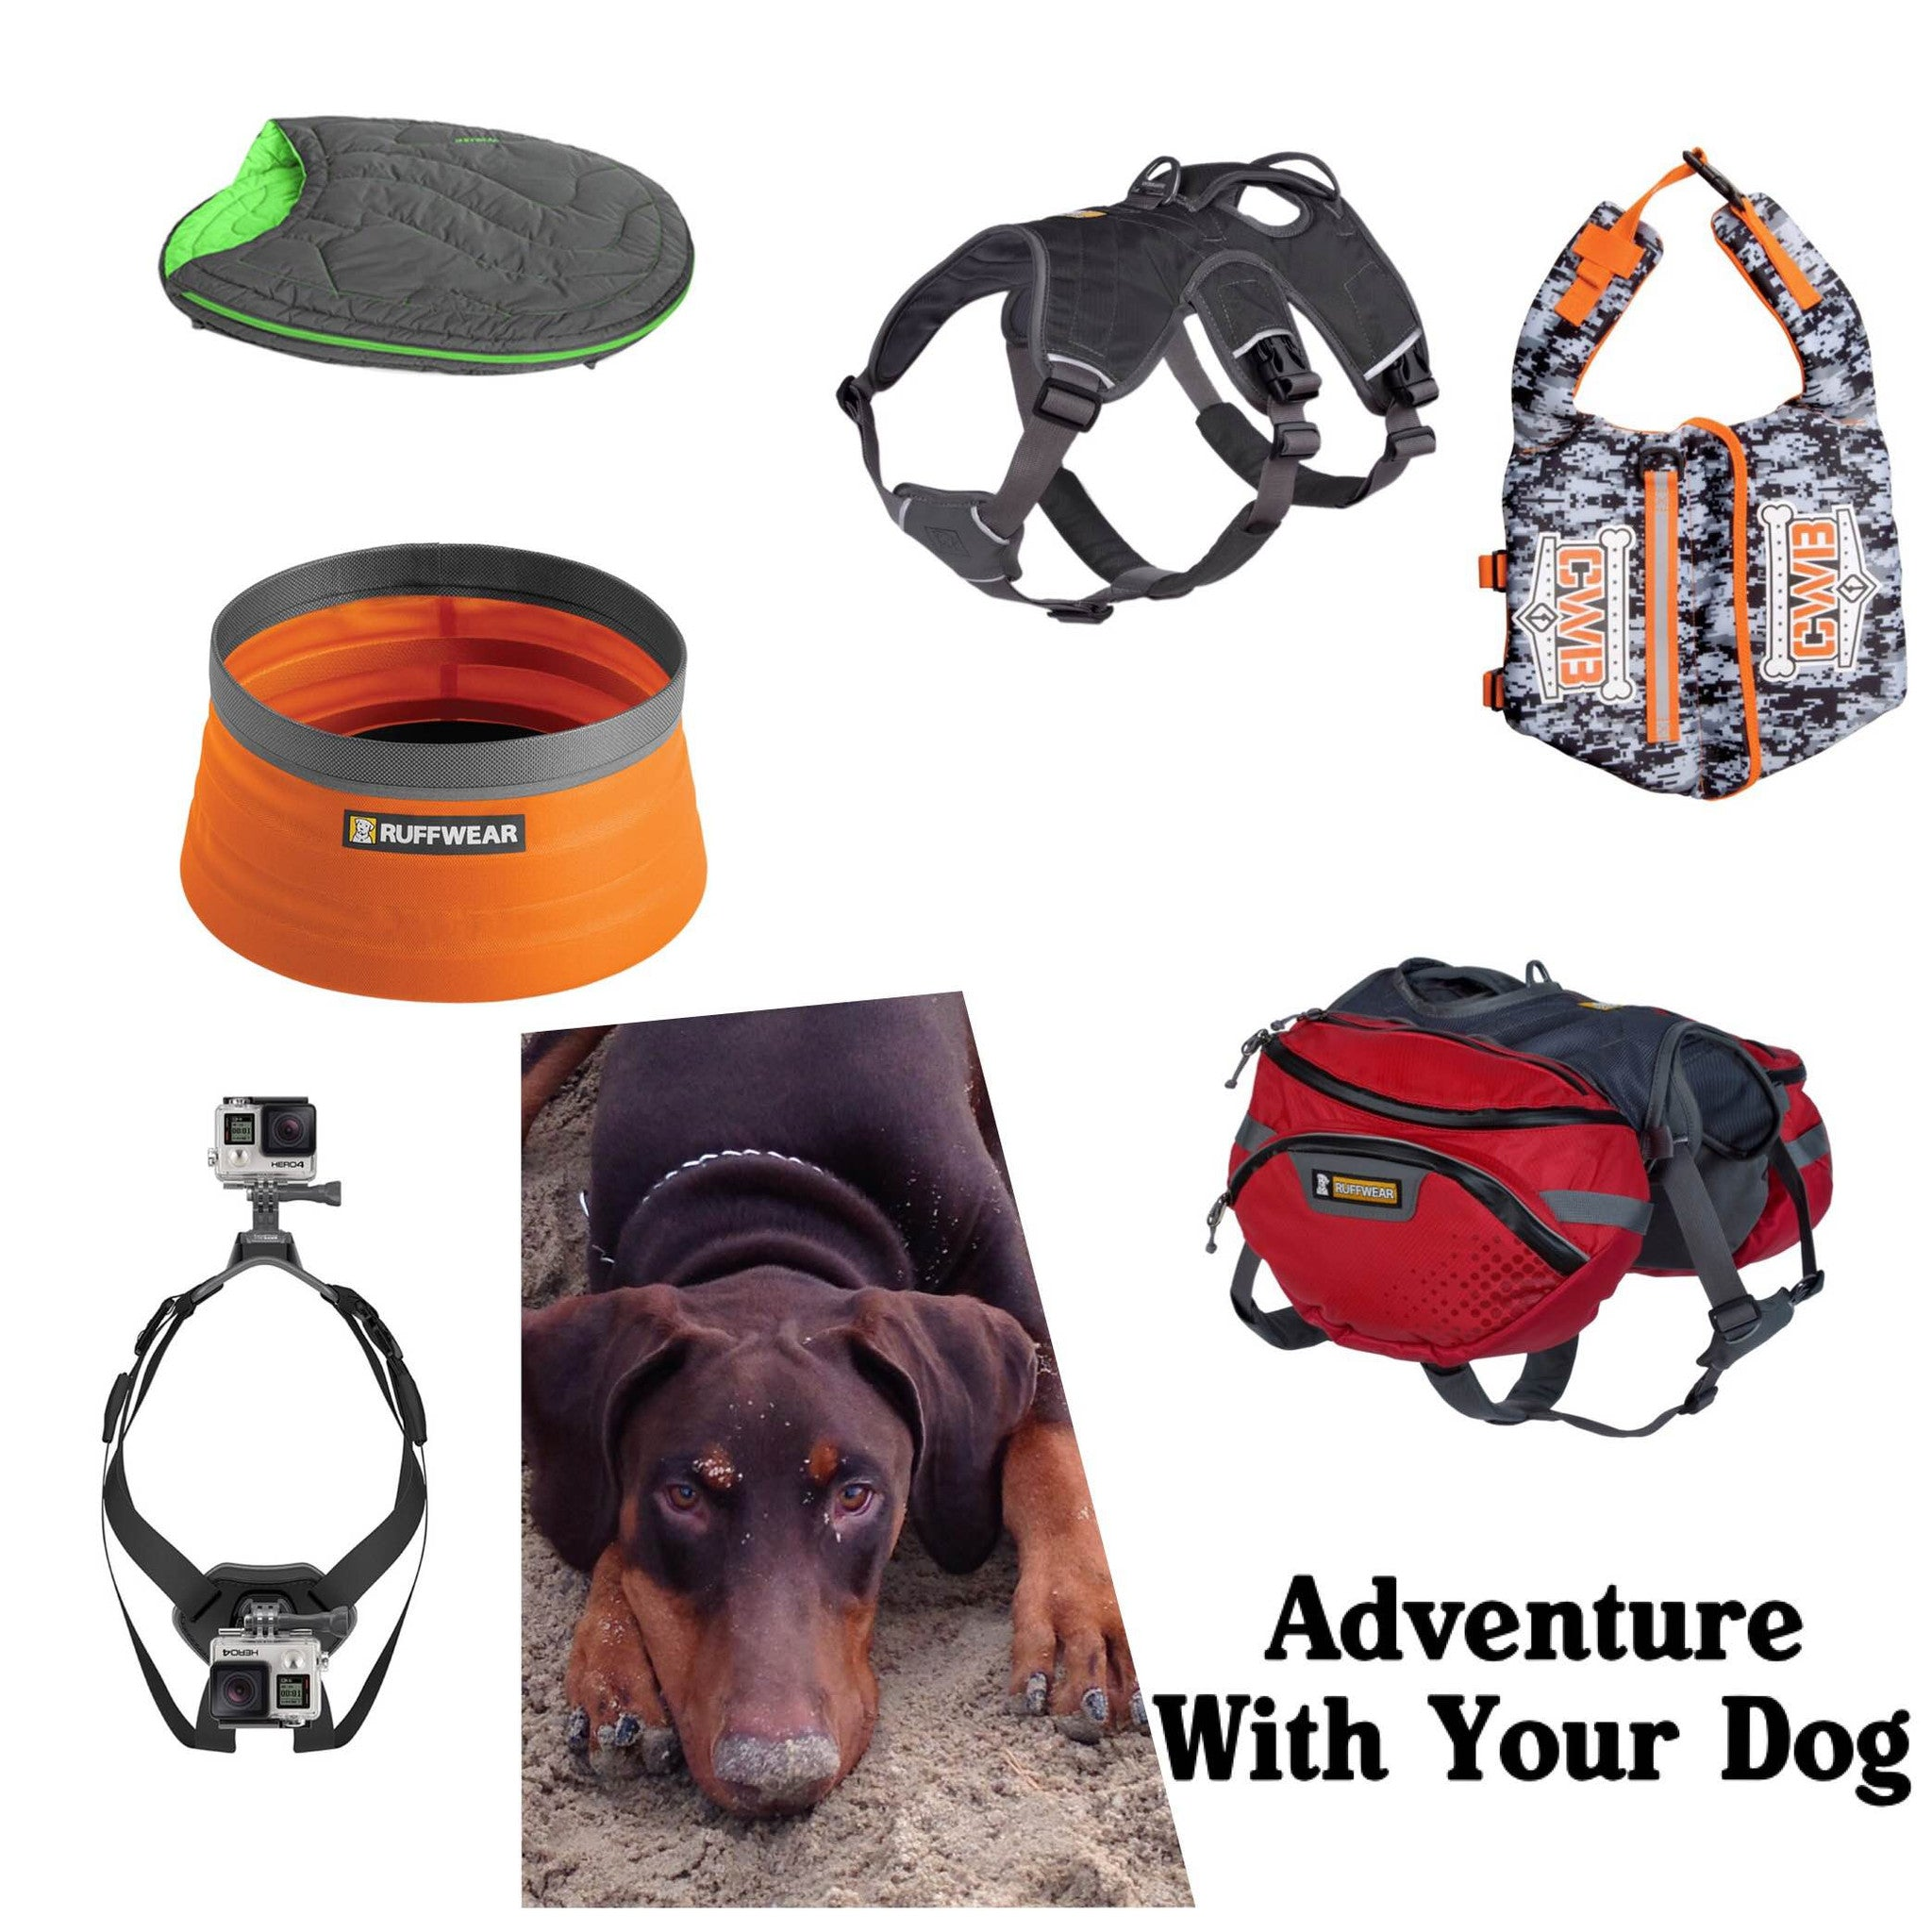 Gear Guide: Accessories for Outside Adventures With Your Dog